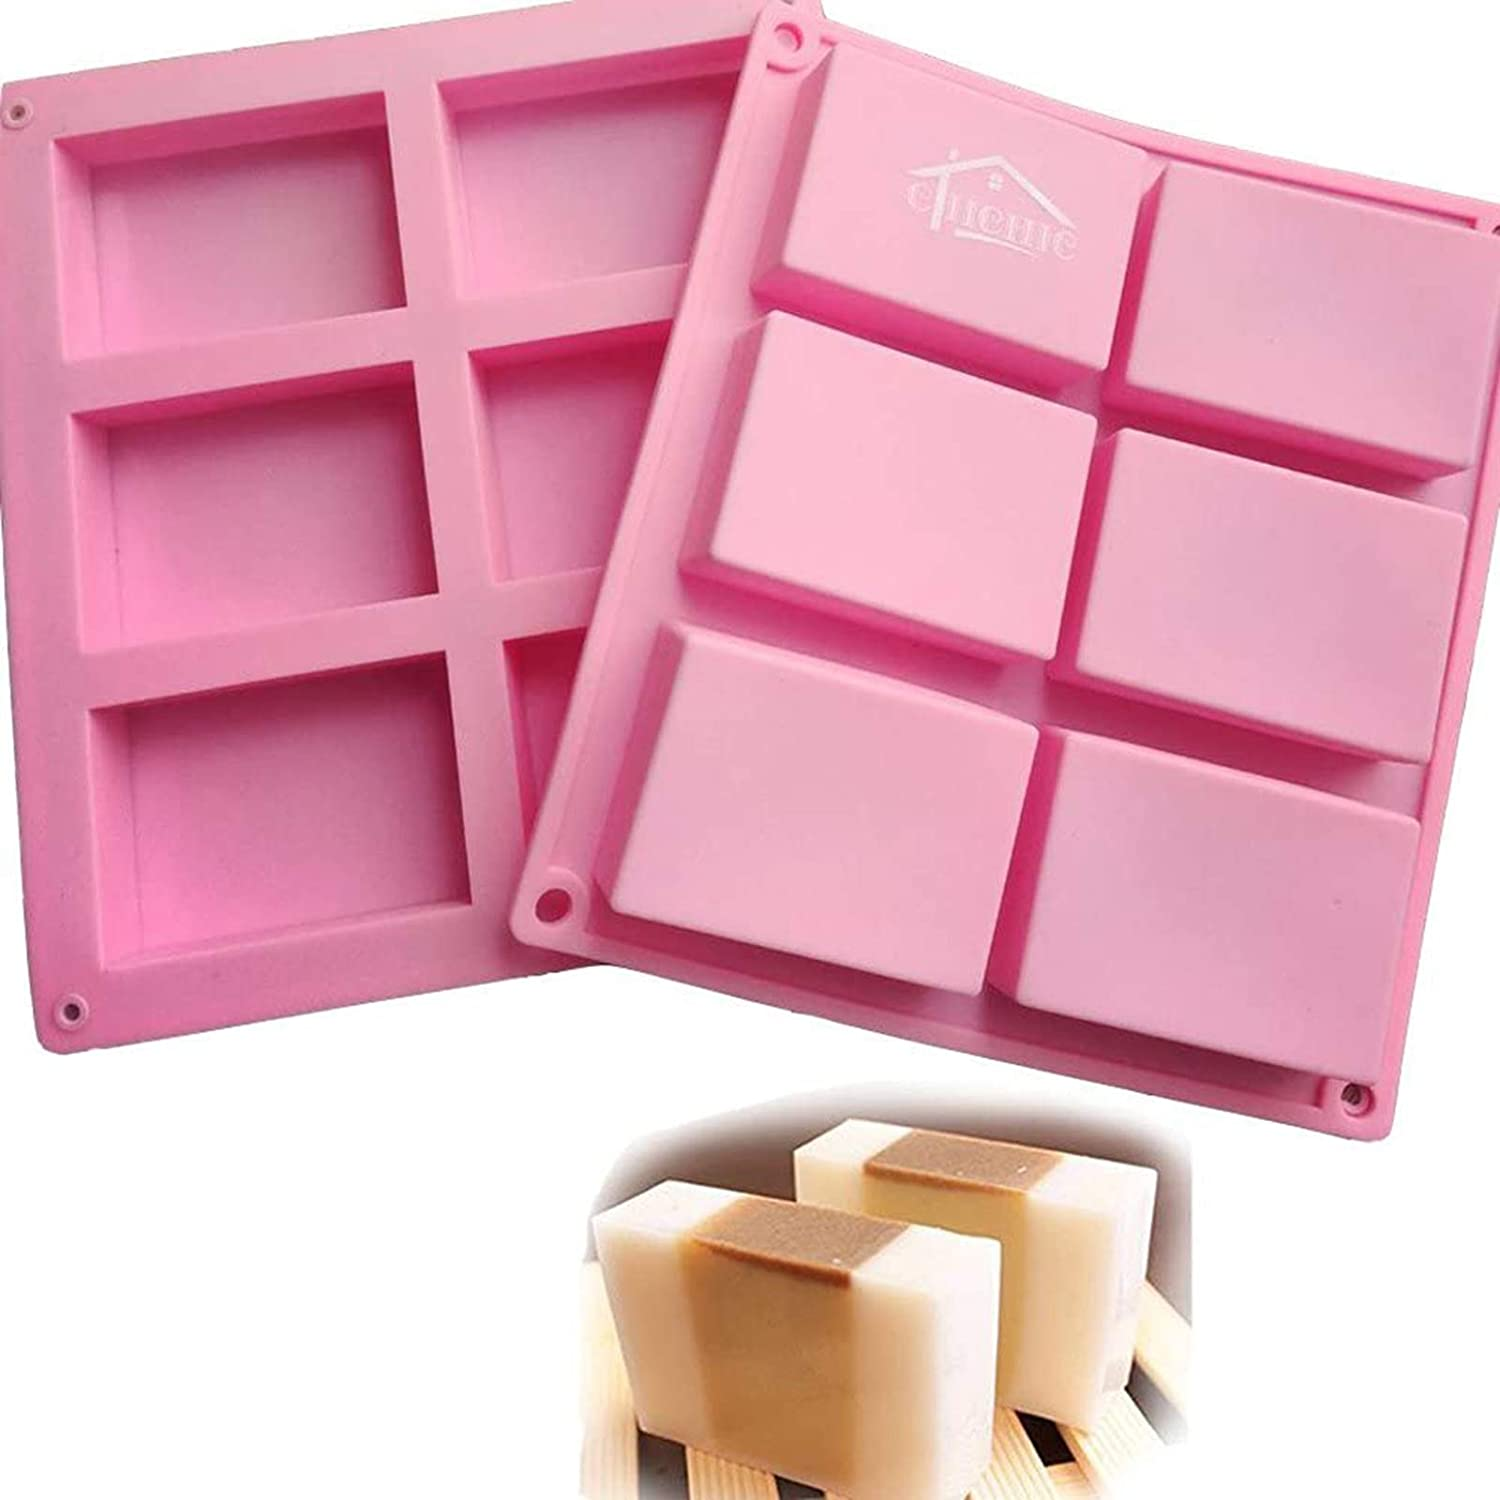 6-Cavity Rectangle Soap Mold Silicone Baking Mould Tray For Homemade Craft QK